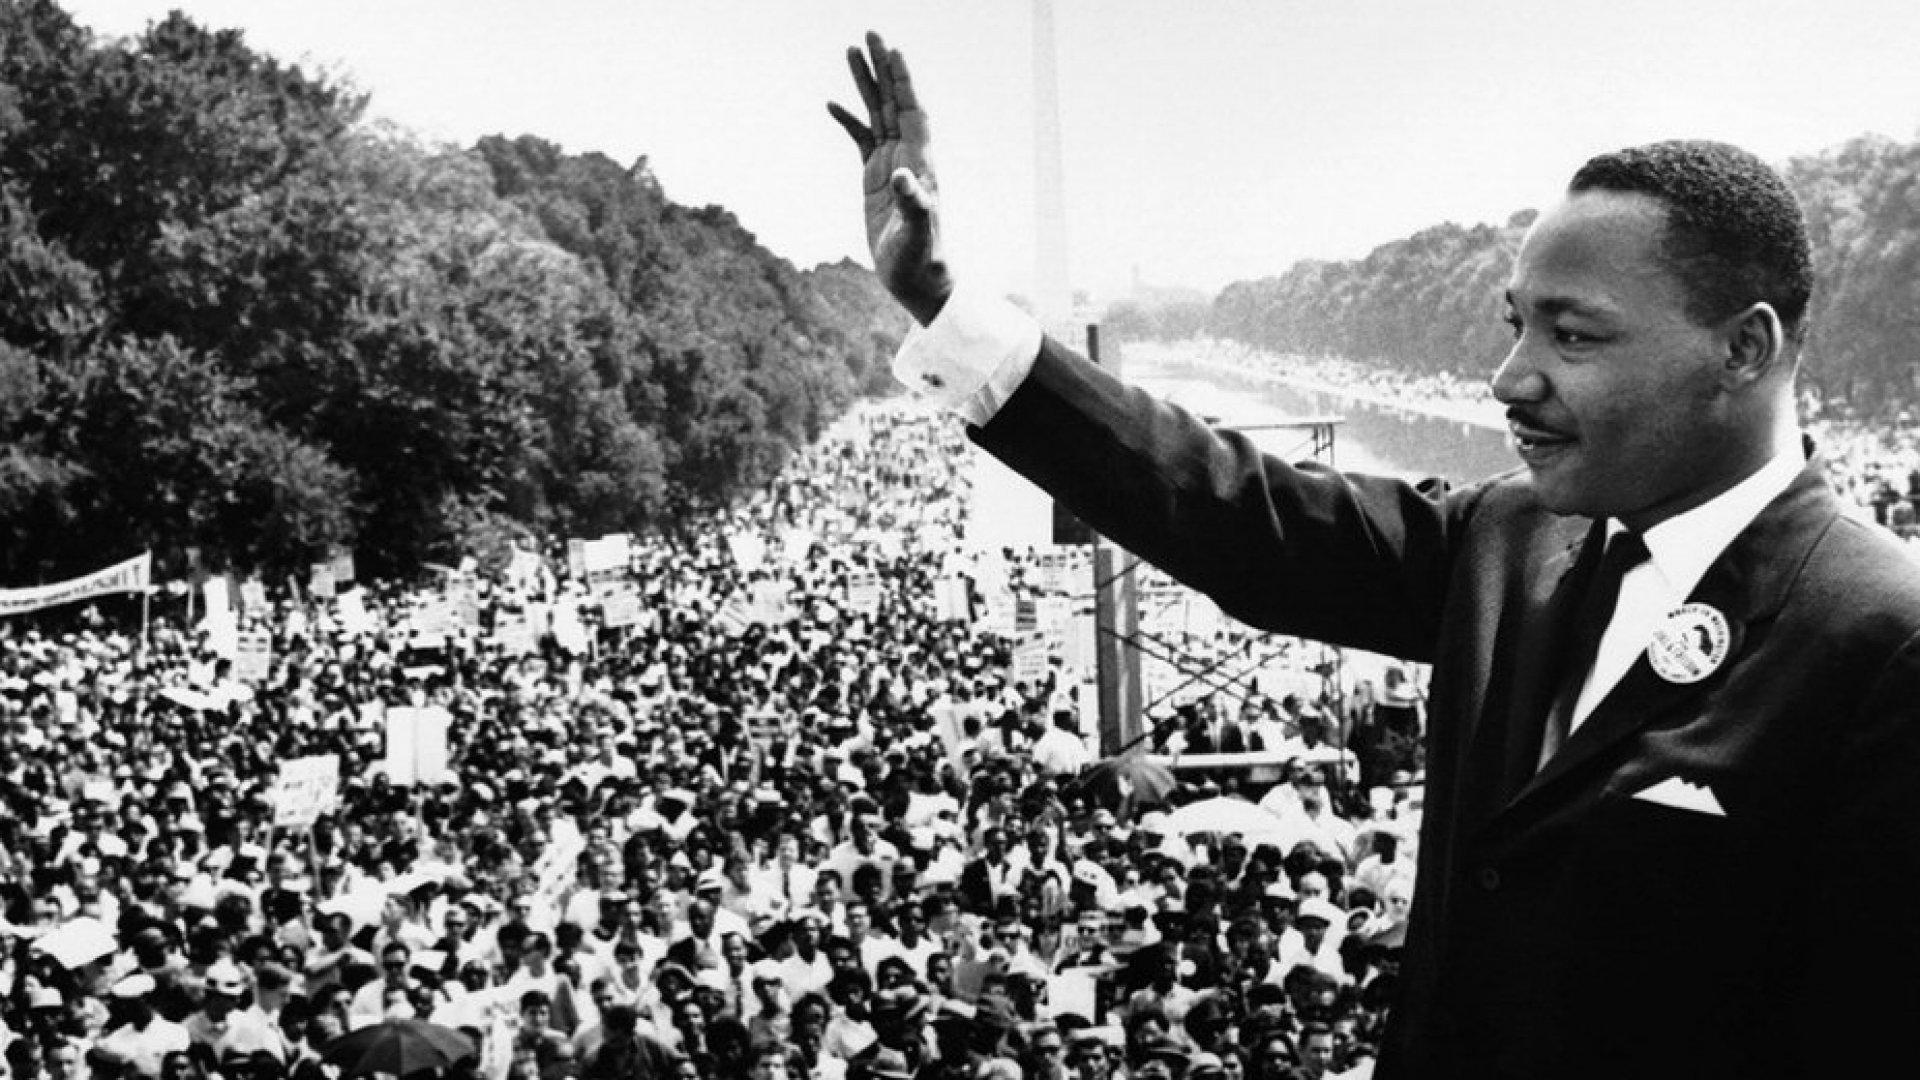 Remembering Martin Luther King and His War on Inequality